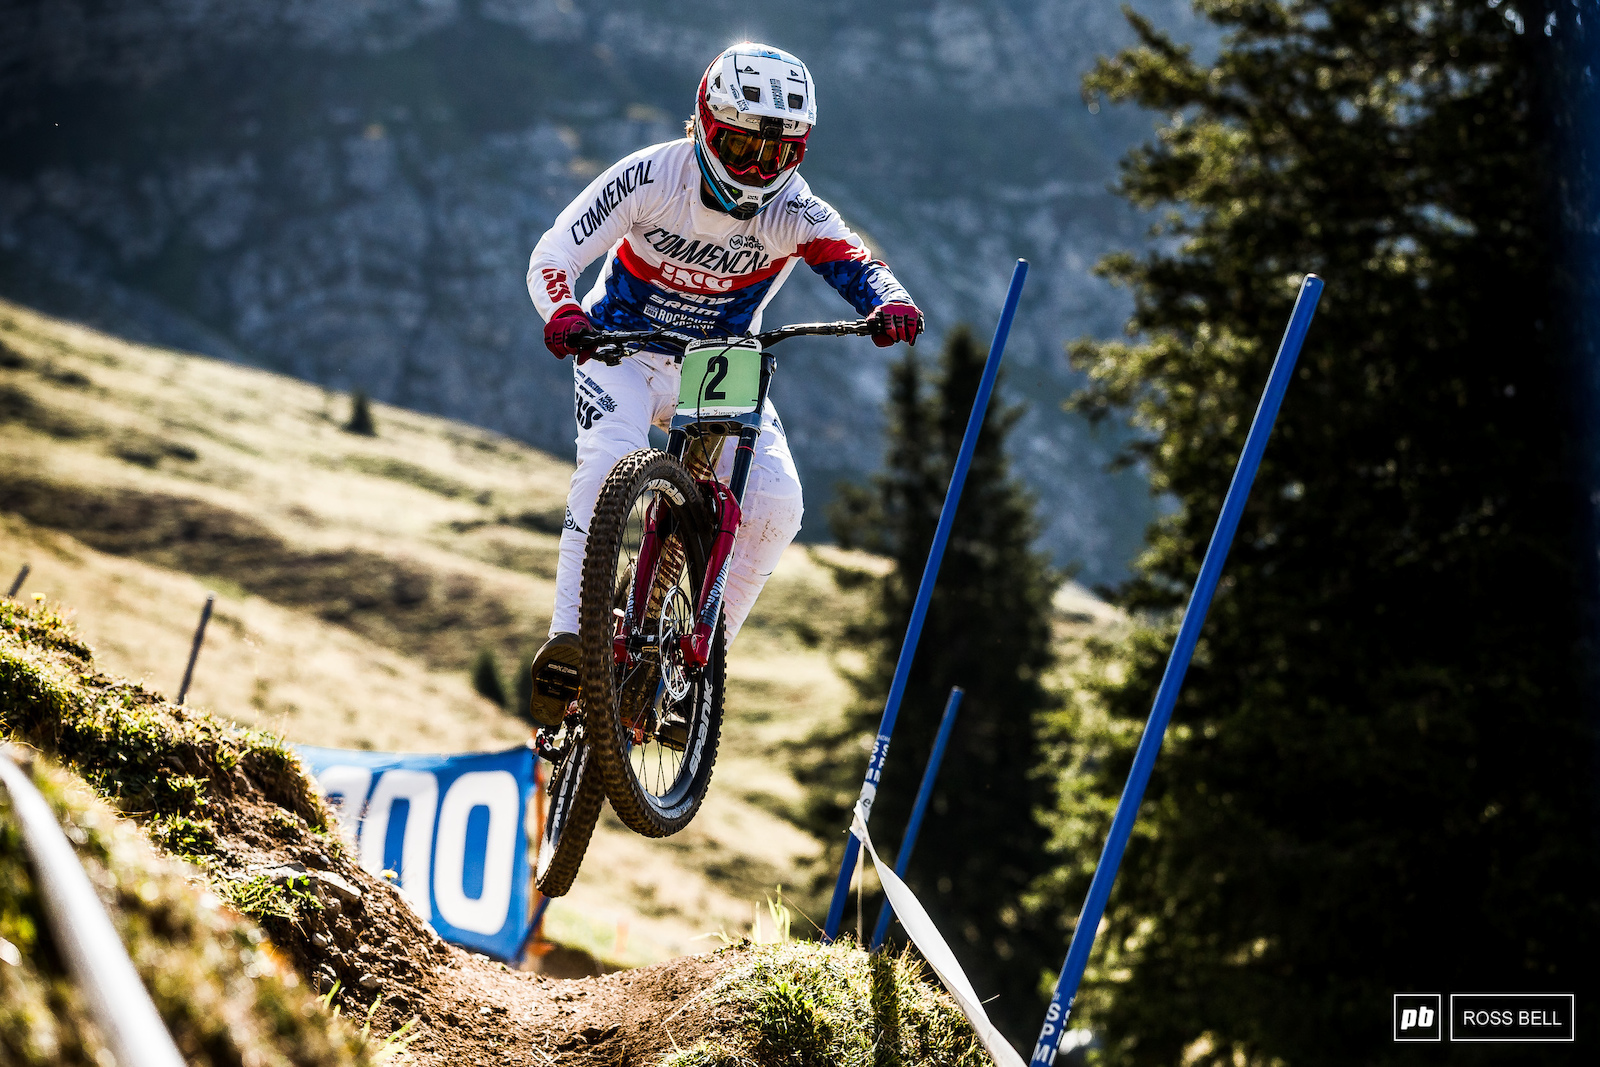 Whilst most riders were rolling through this section Thibaut Daprela decided to launch it. He s had an amazing first year in junior so anything less than gold will leave him with a bad taste in his mouth.